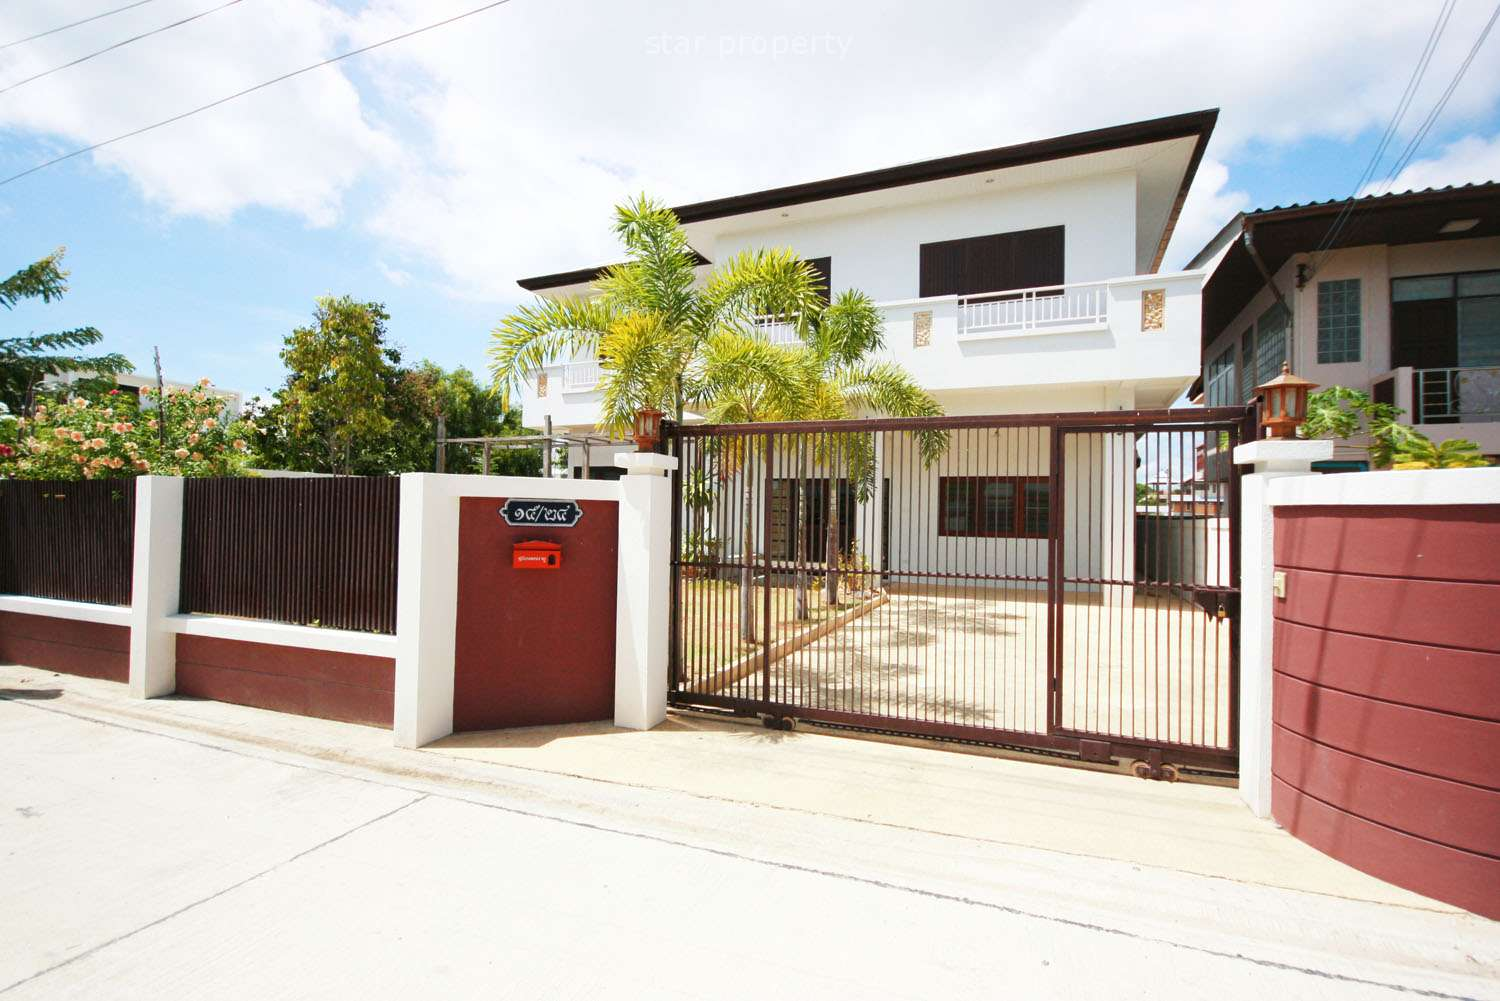 3 Bedroom House in Hua Hin Soi 27